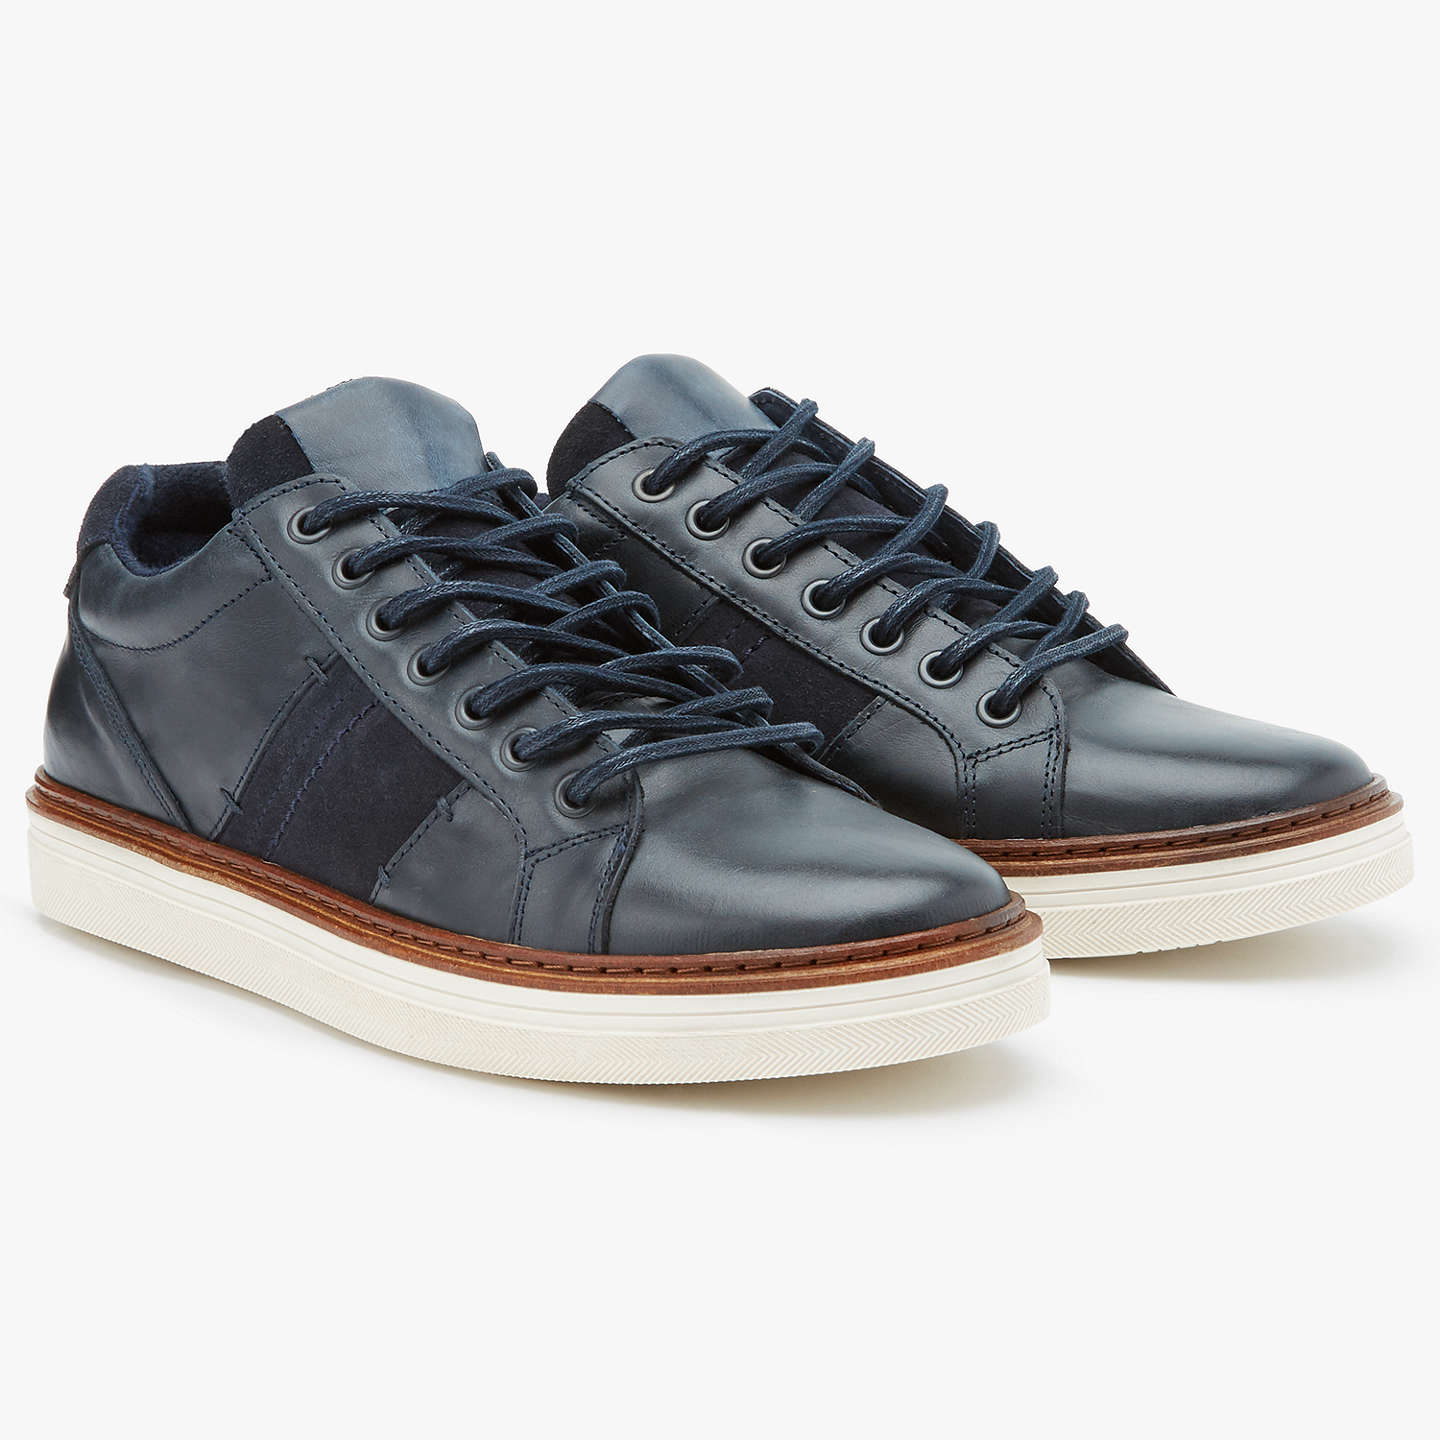 BuyJohn Lewis Stamford Cupsole Leather Trainers, Navy, 7 Online at johnlewis.com